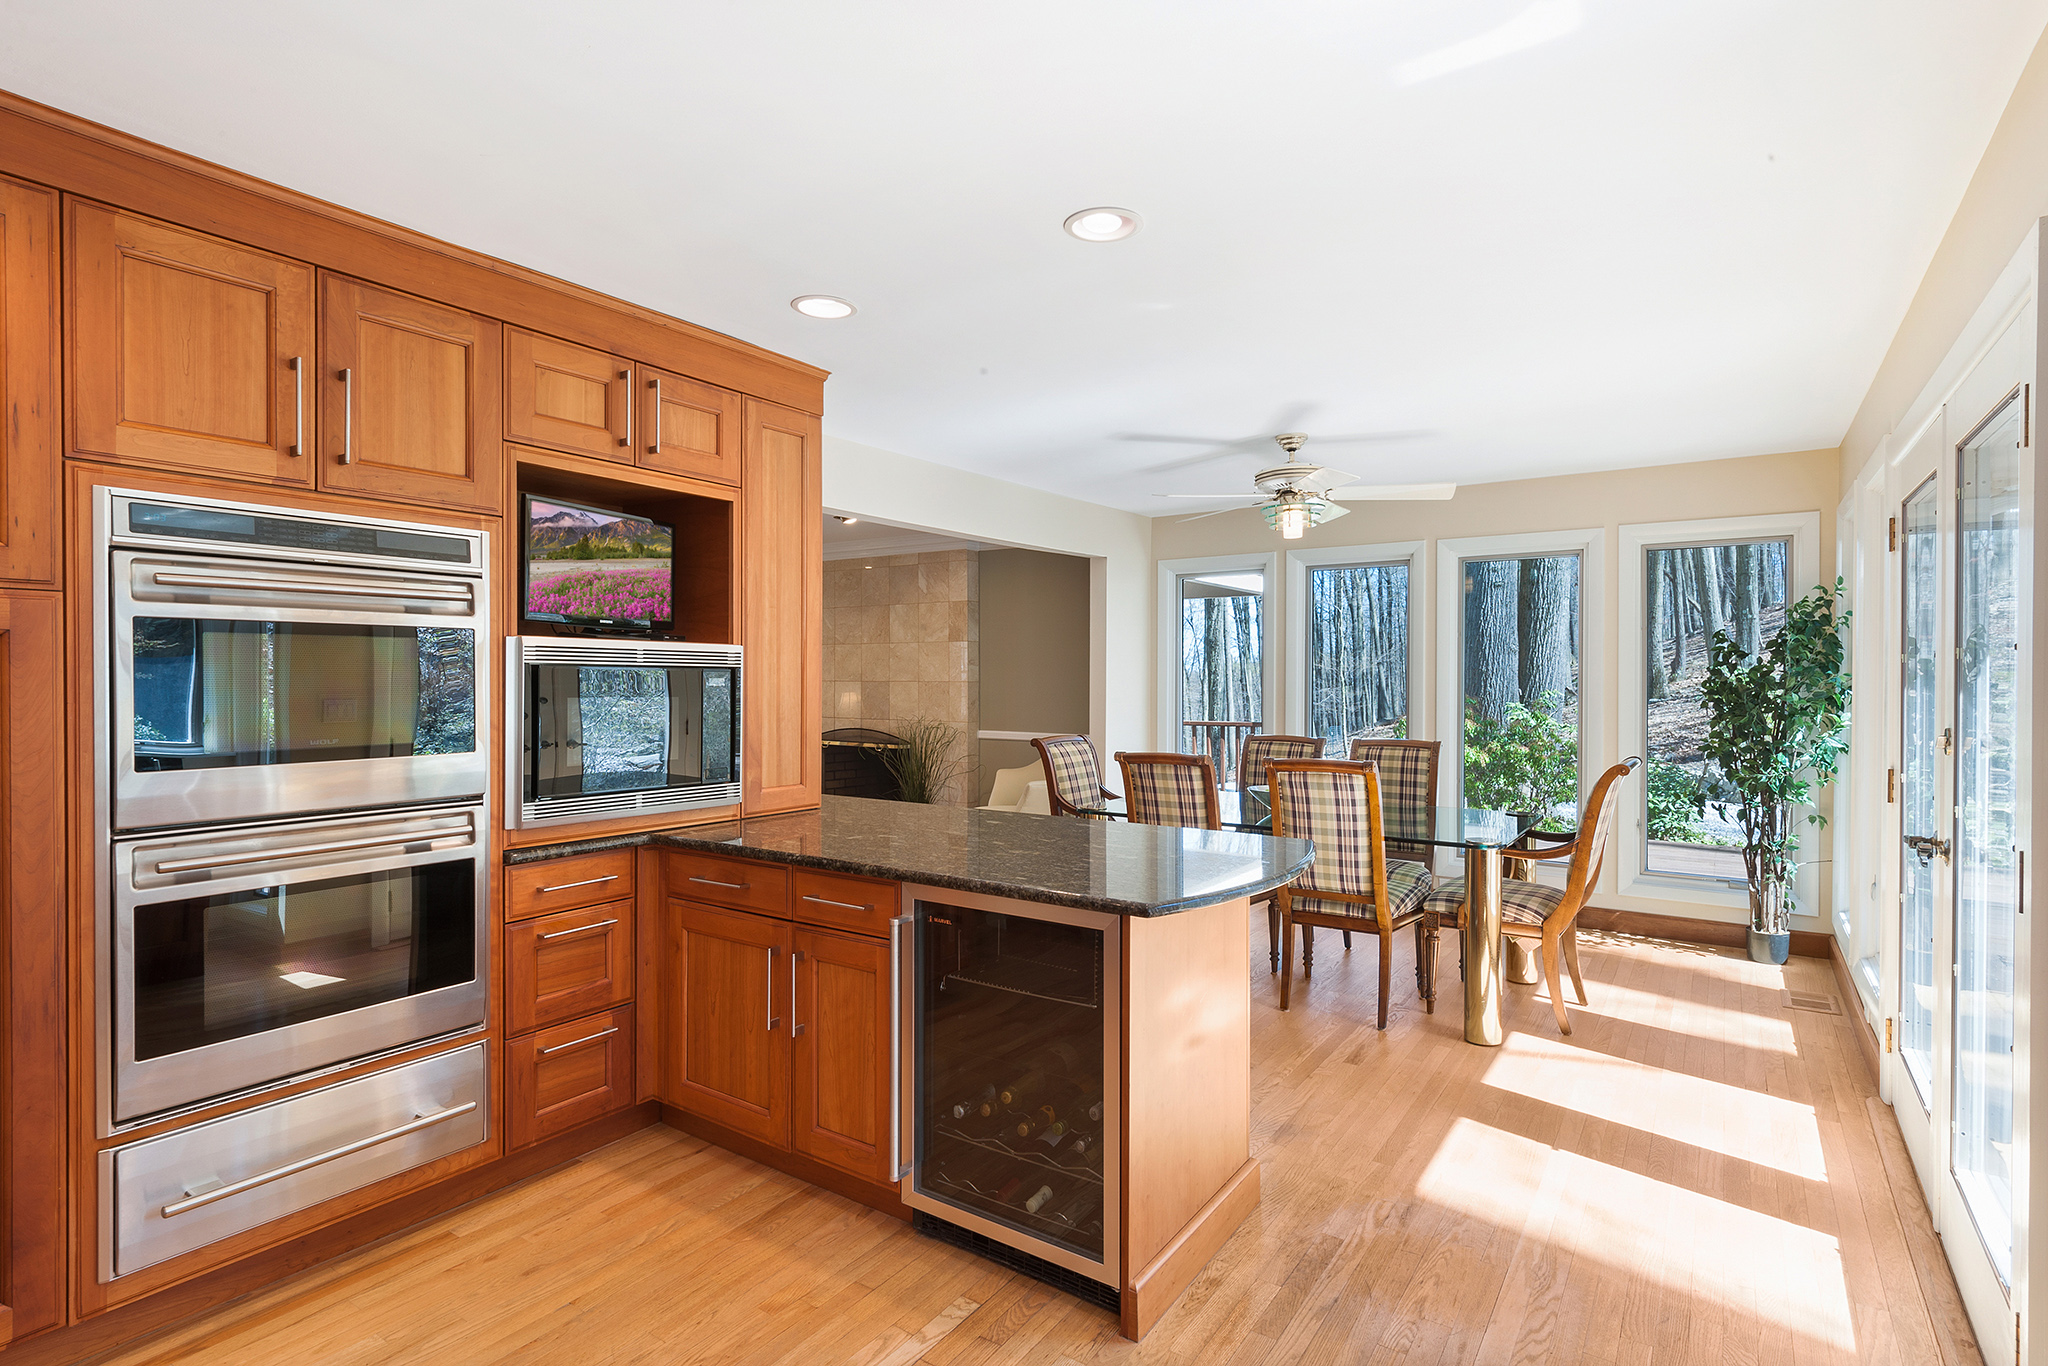 07 1 Dinner Pot Road, Tewksbury — Kitchen 2 (deleted 0d9f3c2757dad058da585ac33cefbd32)